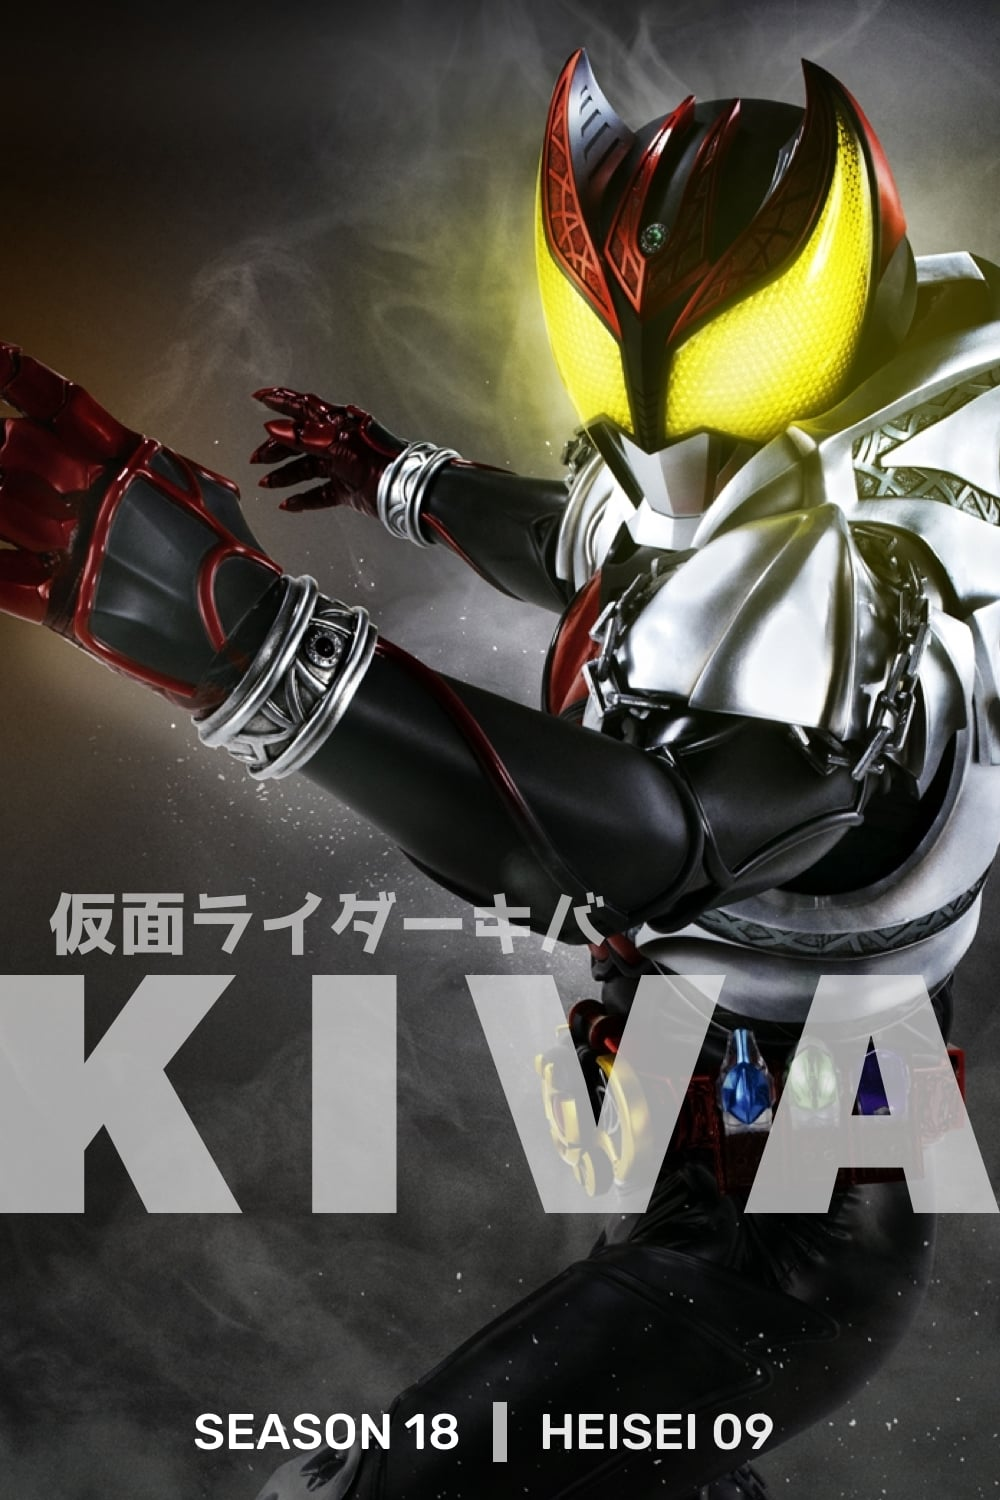 Kamen Rider - Season 21 Episode 42 : Ice, Greeed Form, Broken Wings Season 18